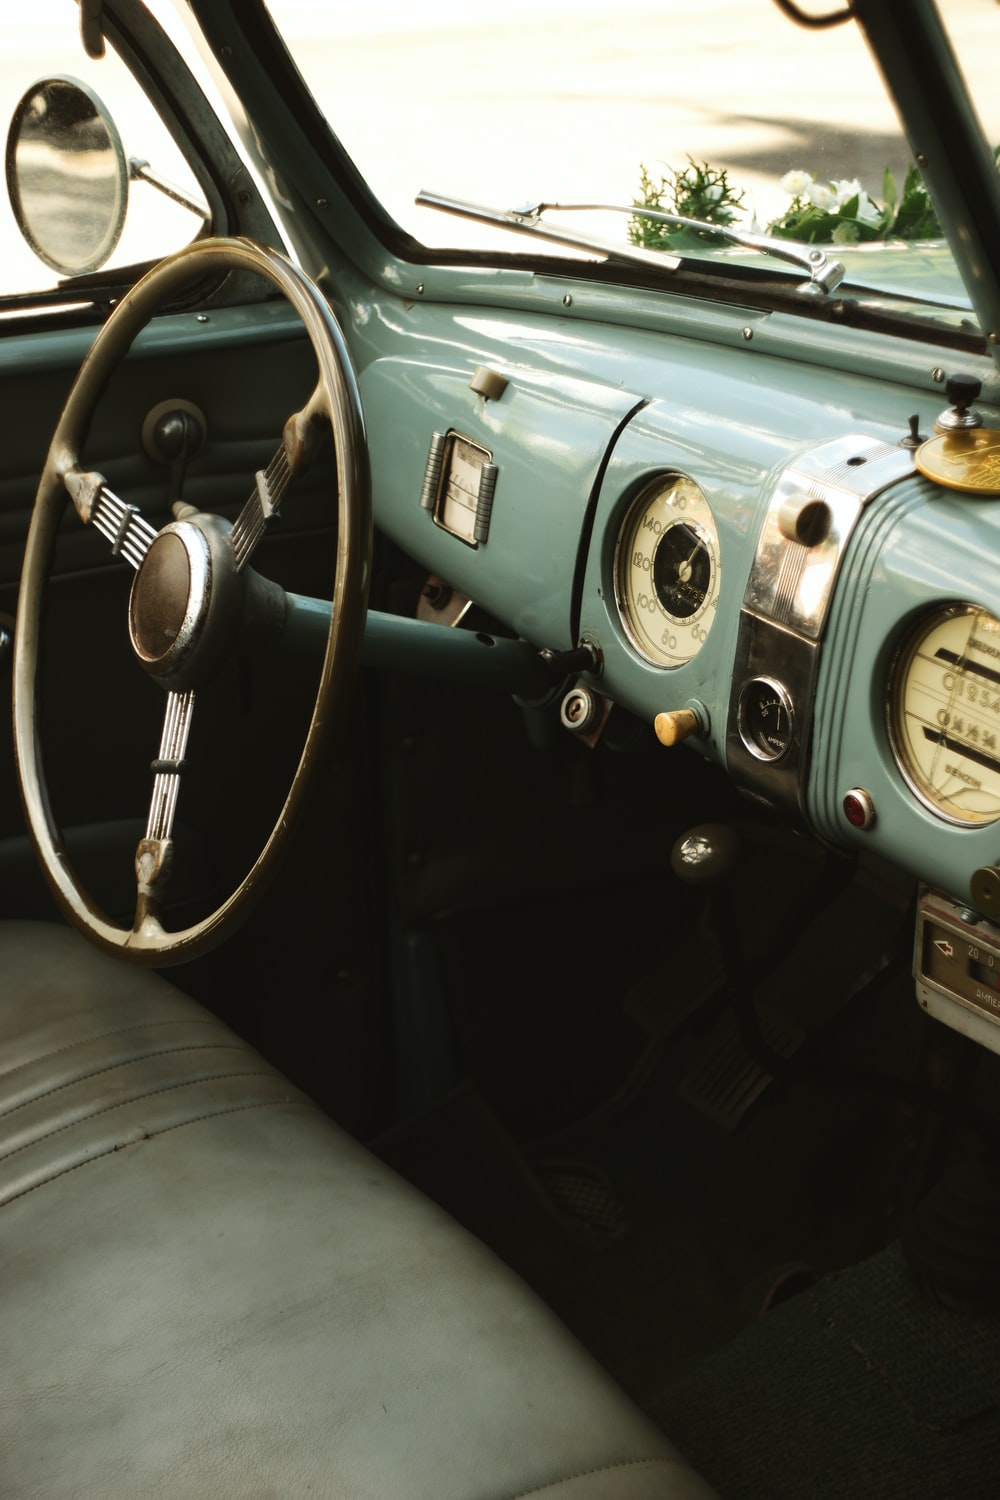 black and gray vintage vehicle interior